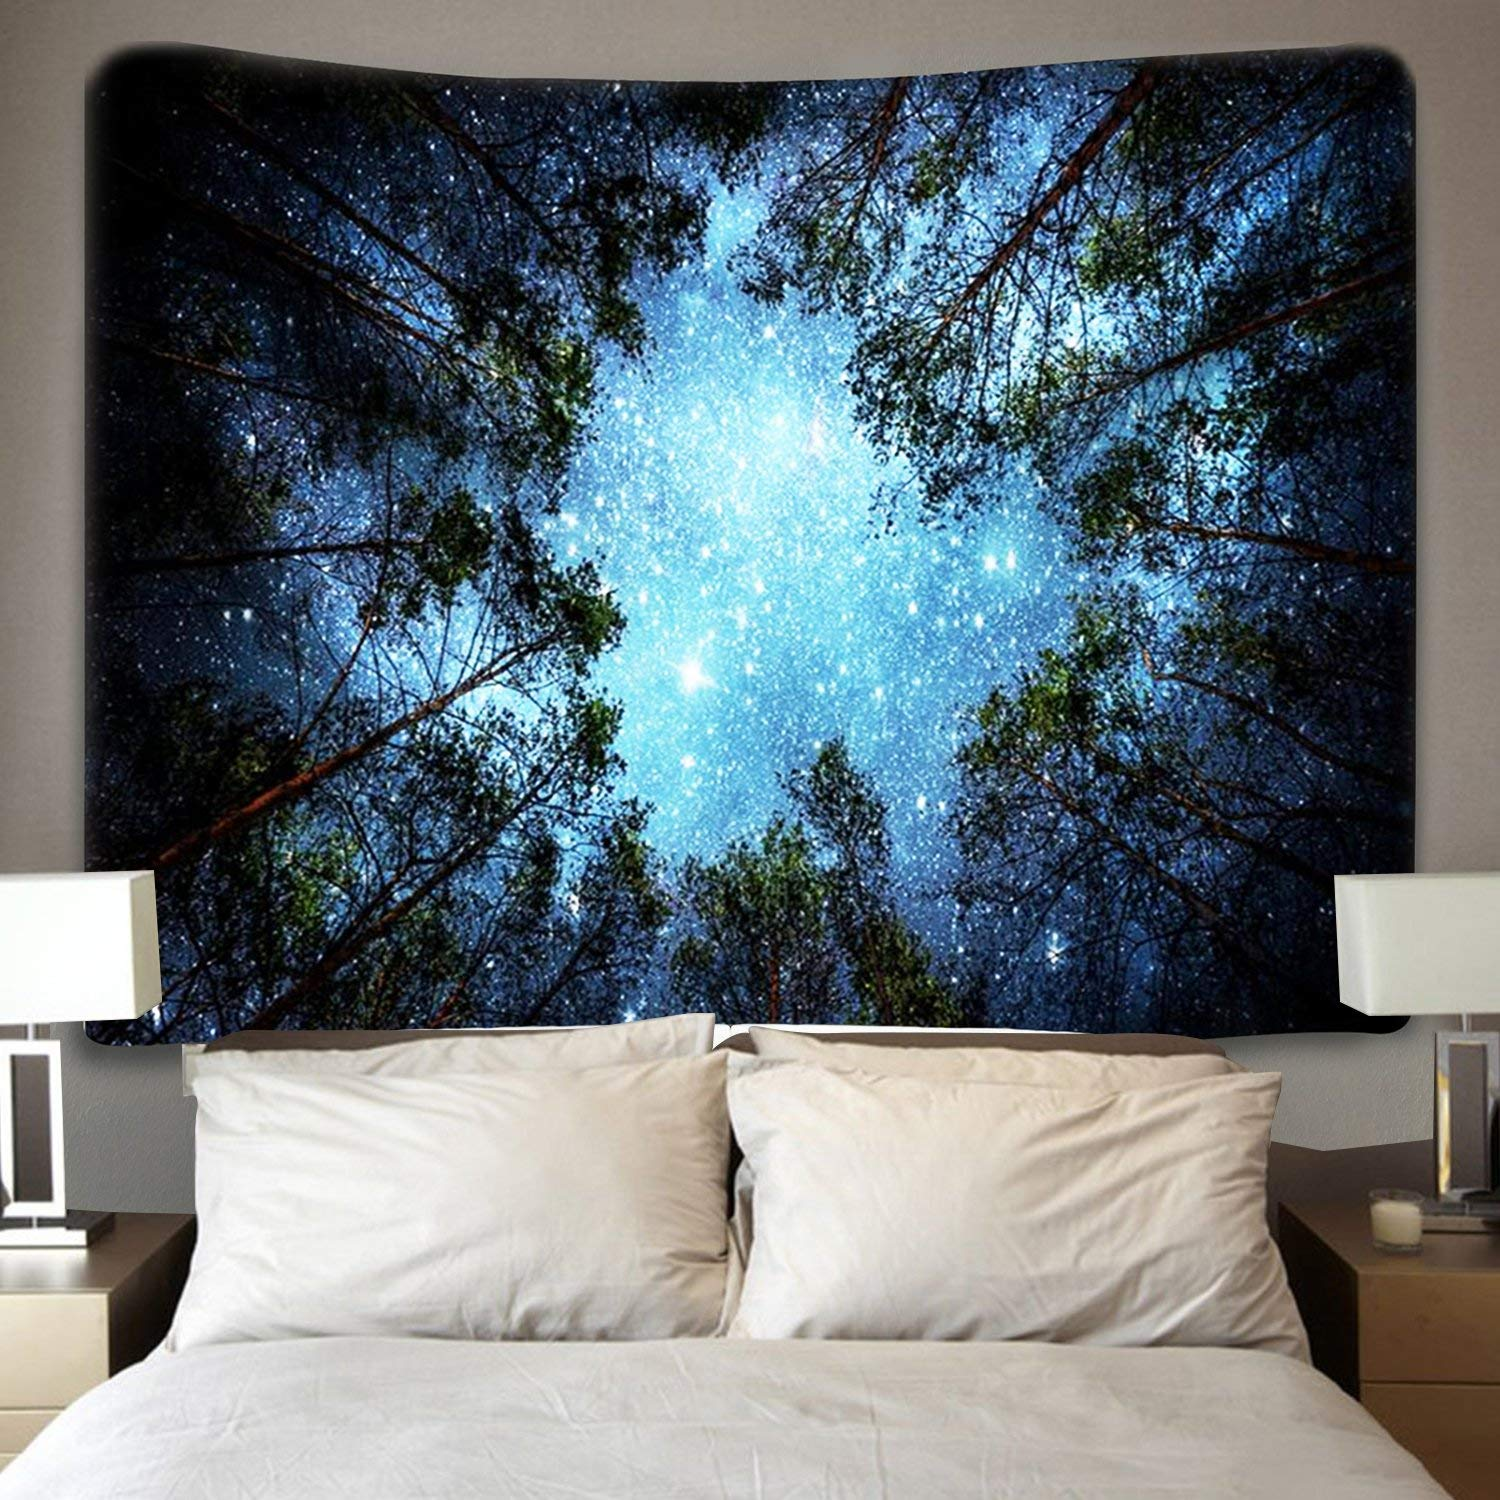 Mural for Bedroom Living Room Dorm Home Decoration LOMOHOO Mountain Sunset Tapestry Color Mountain Wall Hanging Tapestry Sunset Nature Landscape Art Wall Hanging